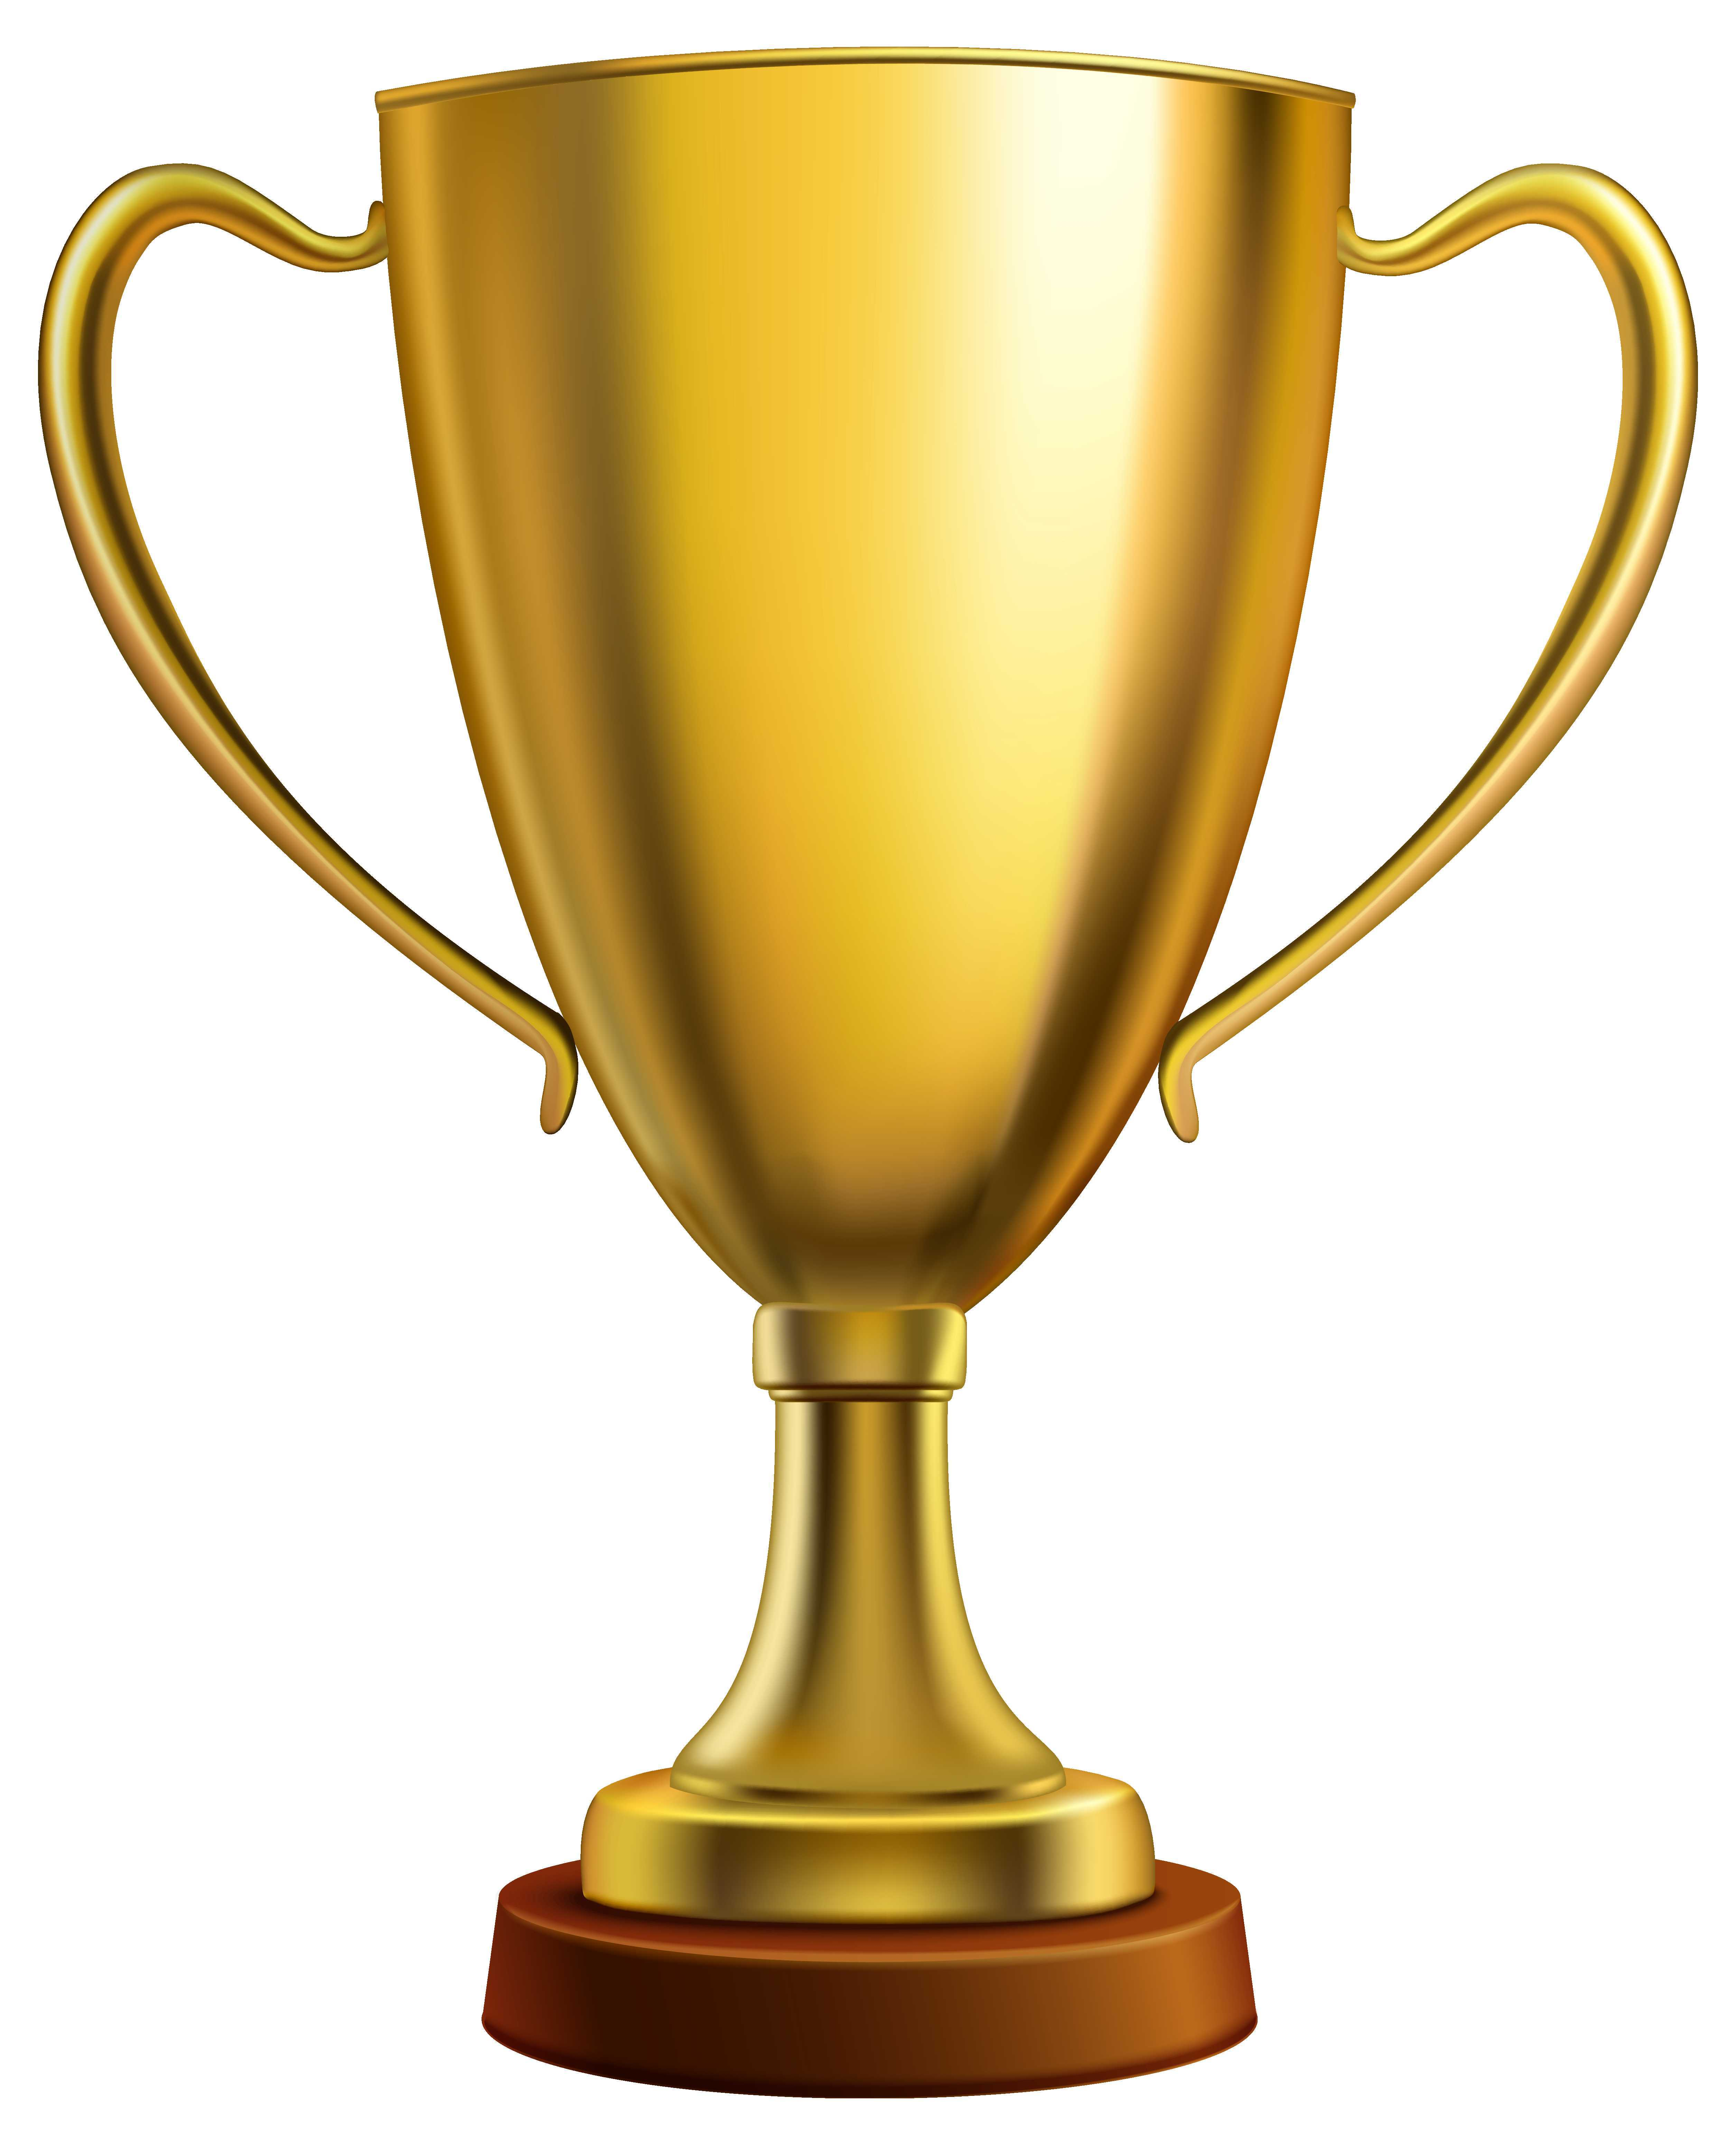 Trophy pictures clipart image free stock Funny Trophy Clipart Sheets Beautiful Super - Clipart1001 ... image free stock